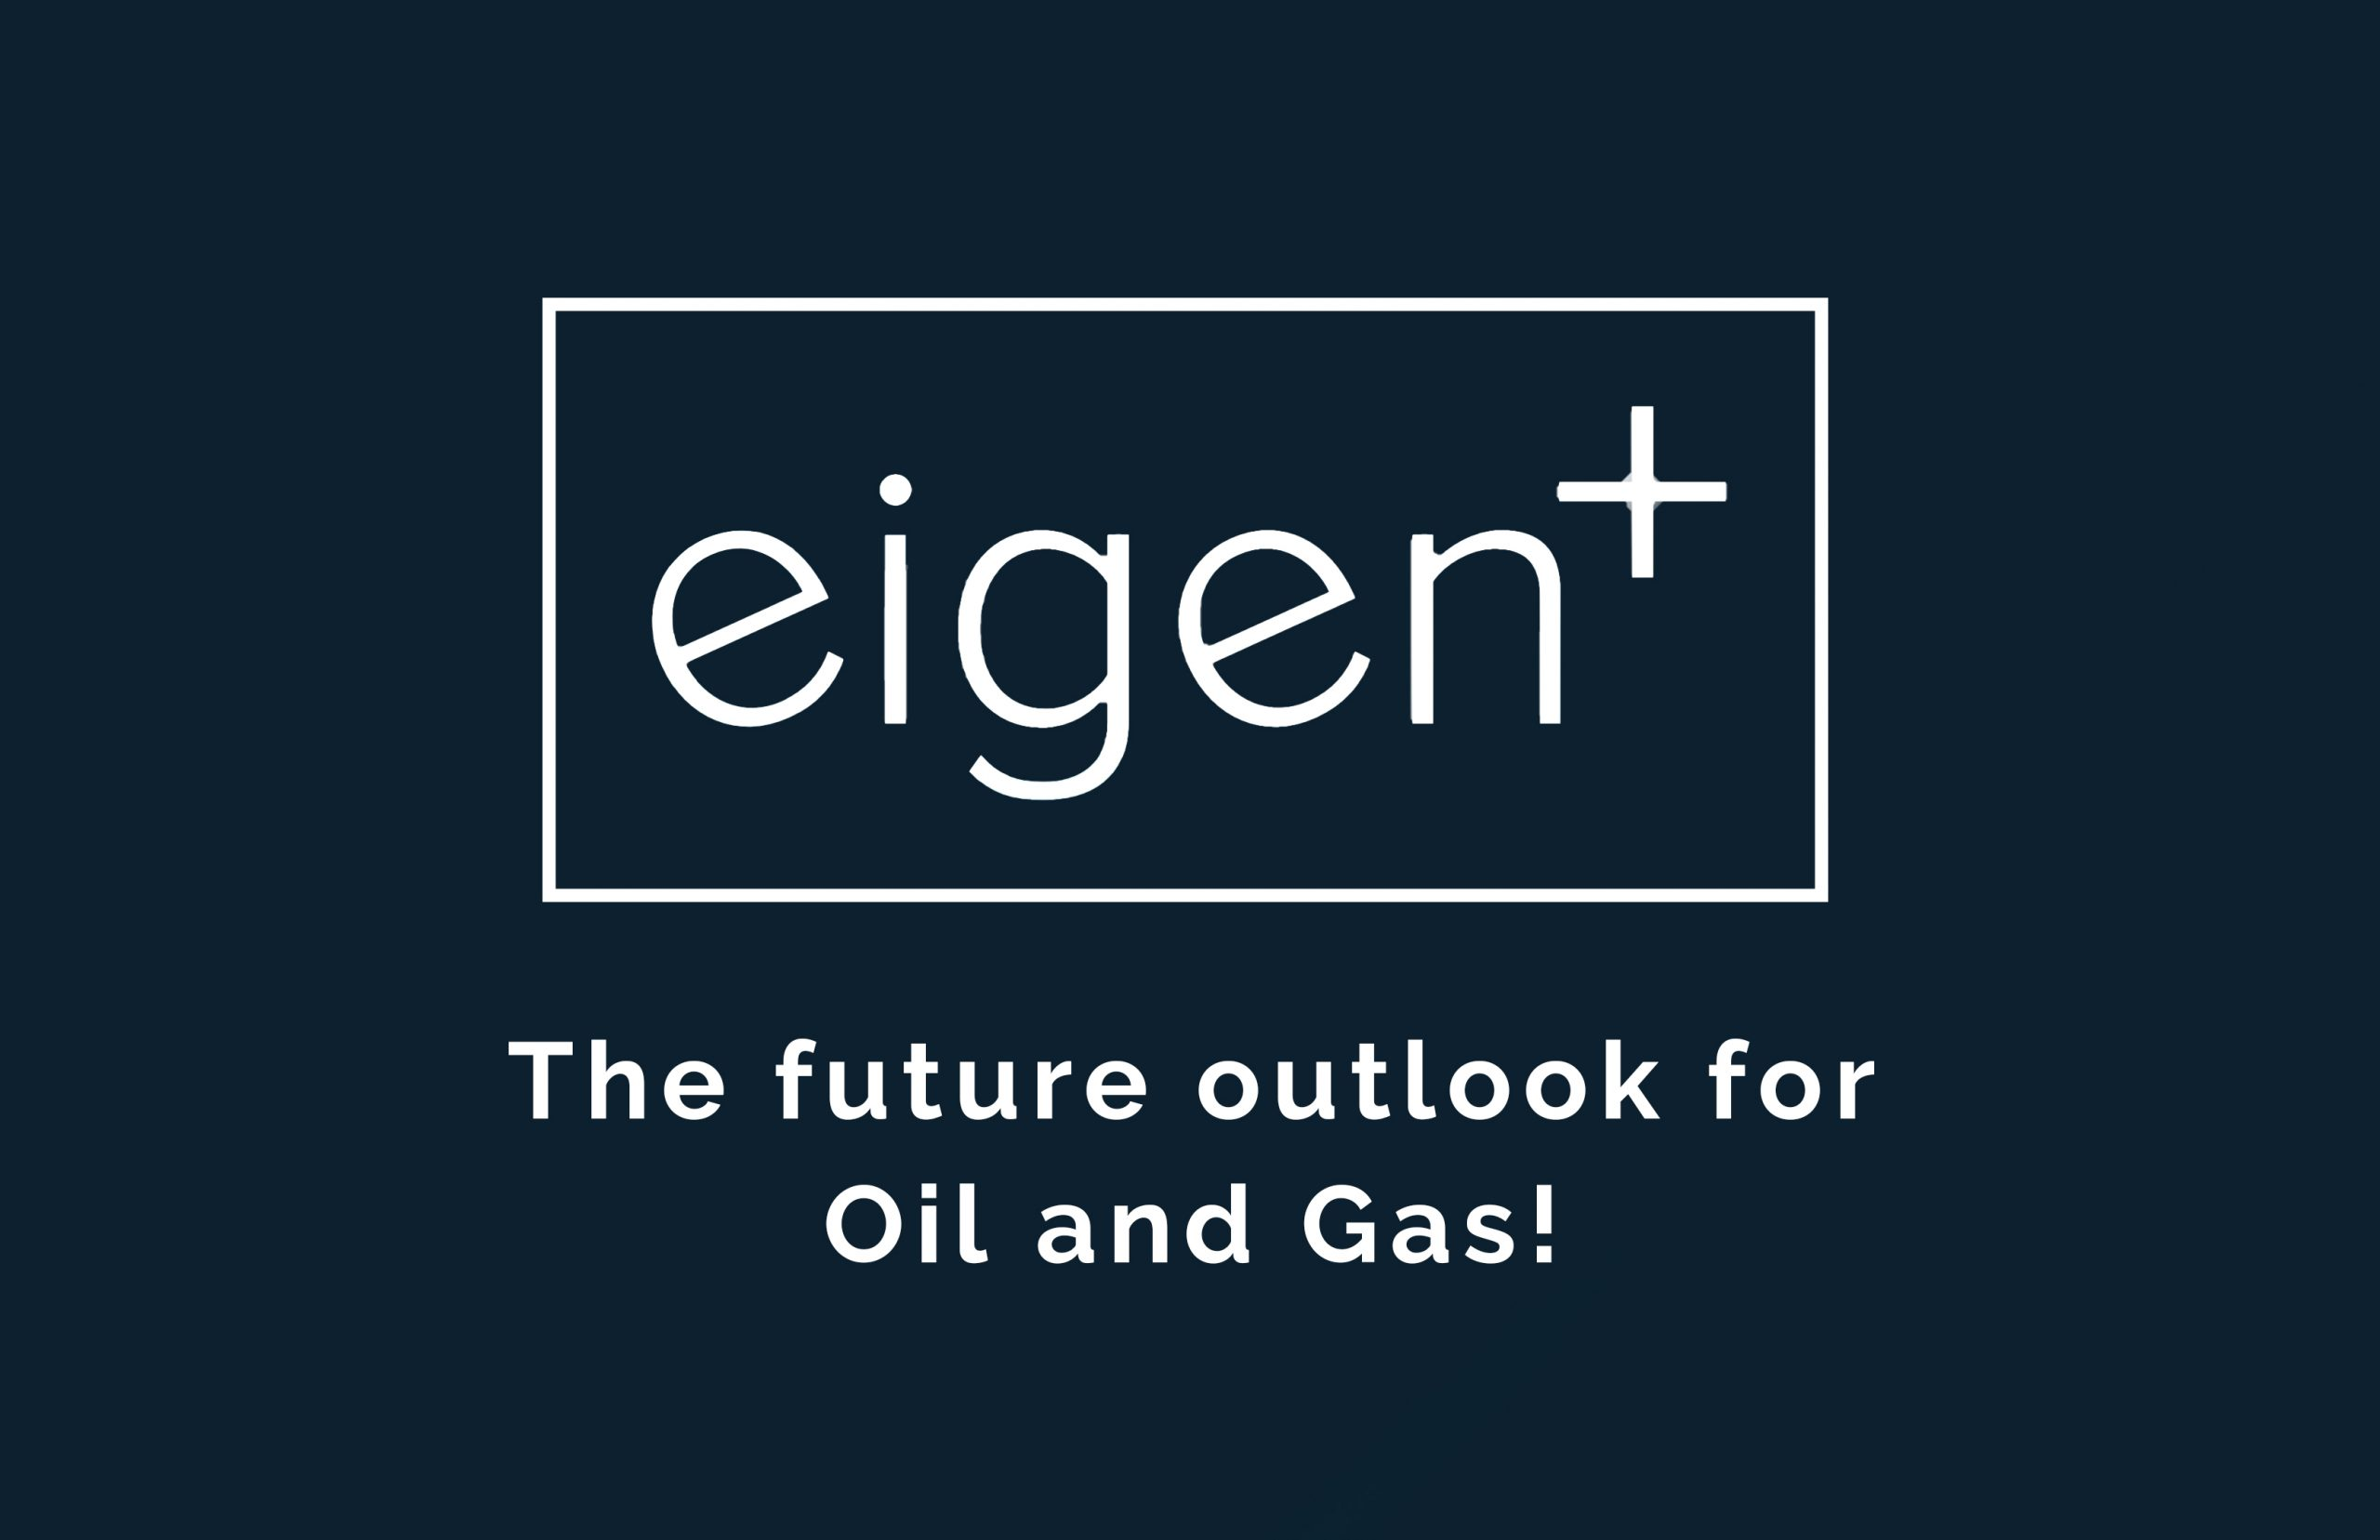 The Future Outlook for Oil and Gas - Eigen